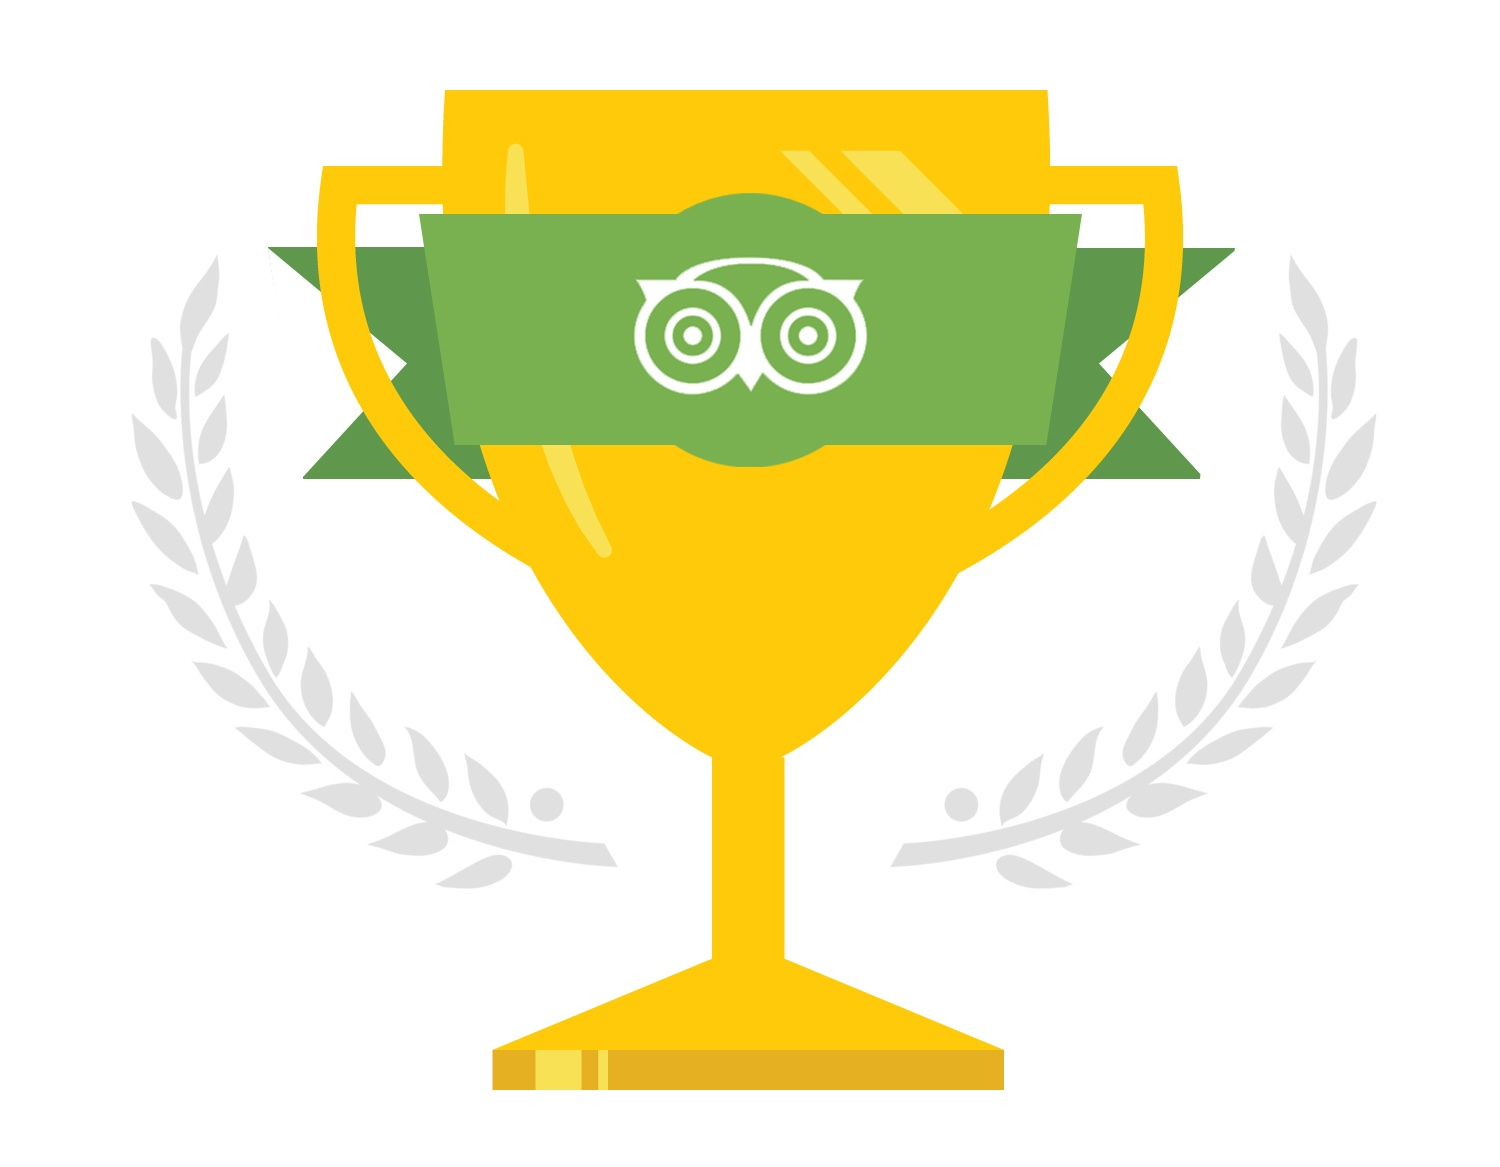 TripAdvisor Awards: what are they, and how can you earn them?